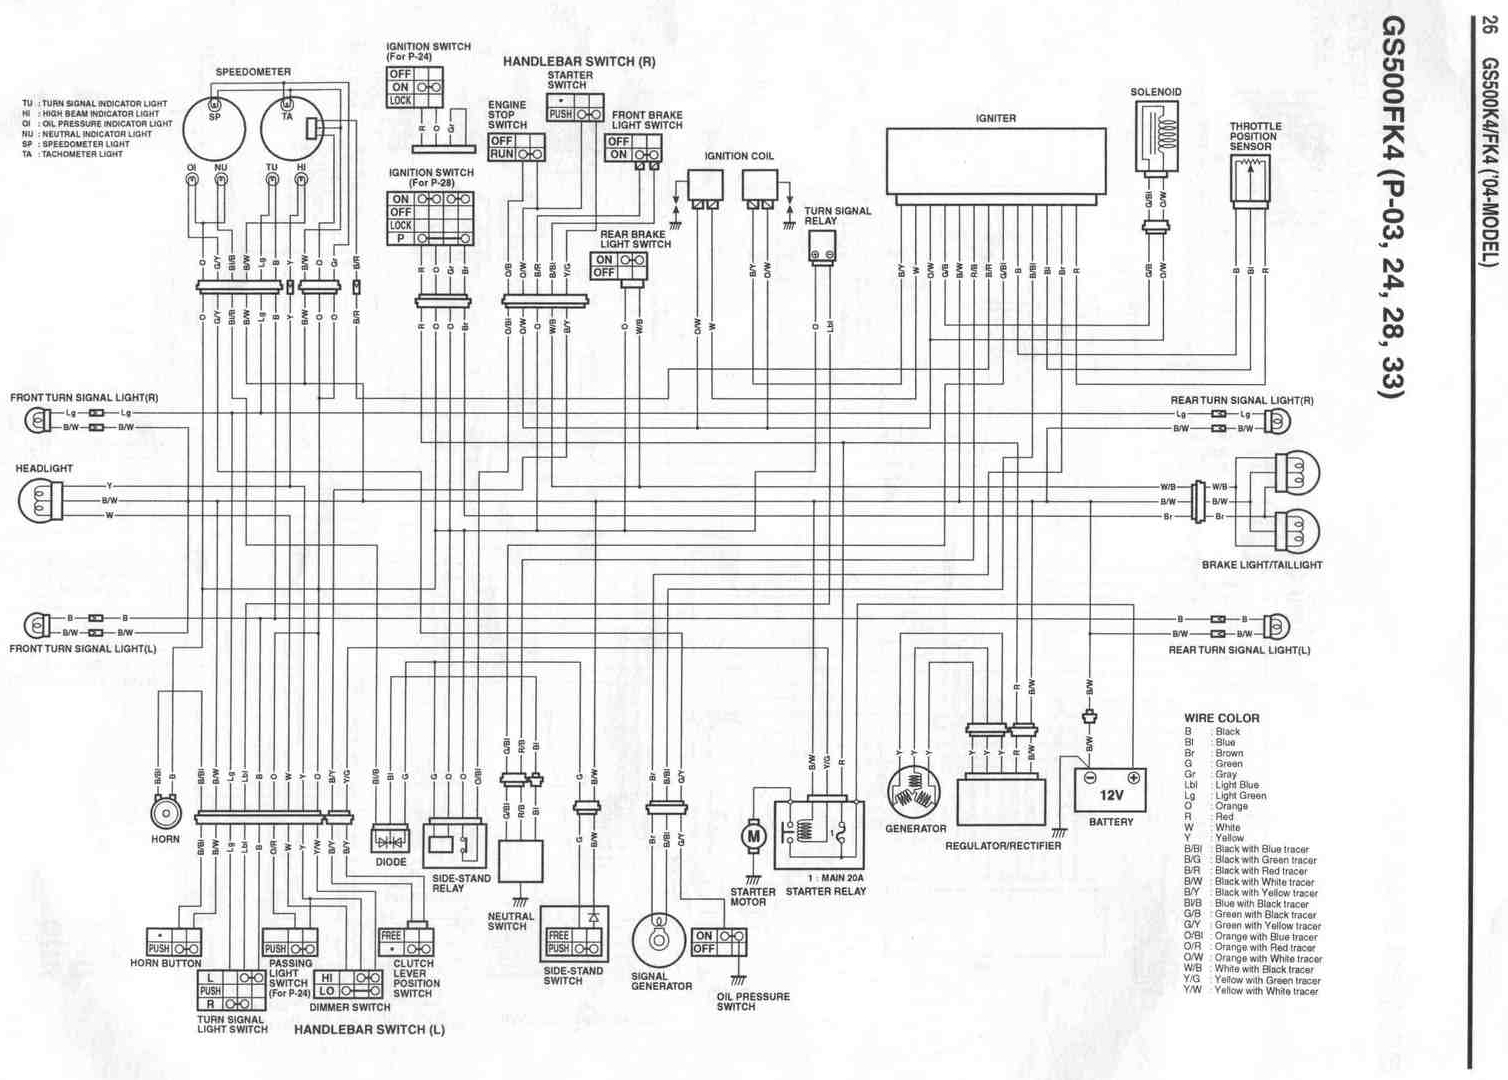 Suzuki_WiringDiagram_04 suzuki gs500 wiring diagram 95 suzuki gs500f wiring diagram \u2022 free 1978 gs750 wiring diagram at nearapp.co